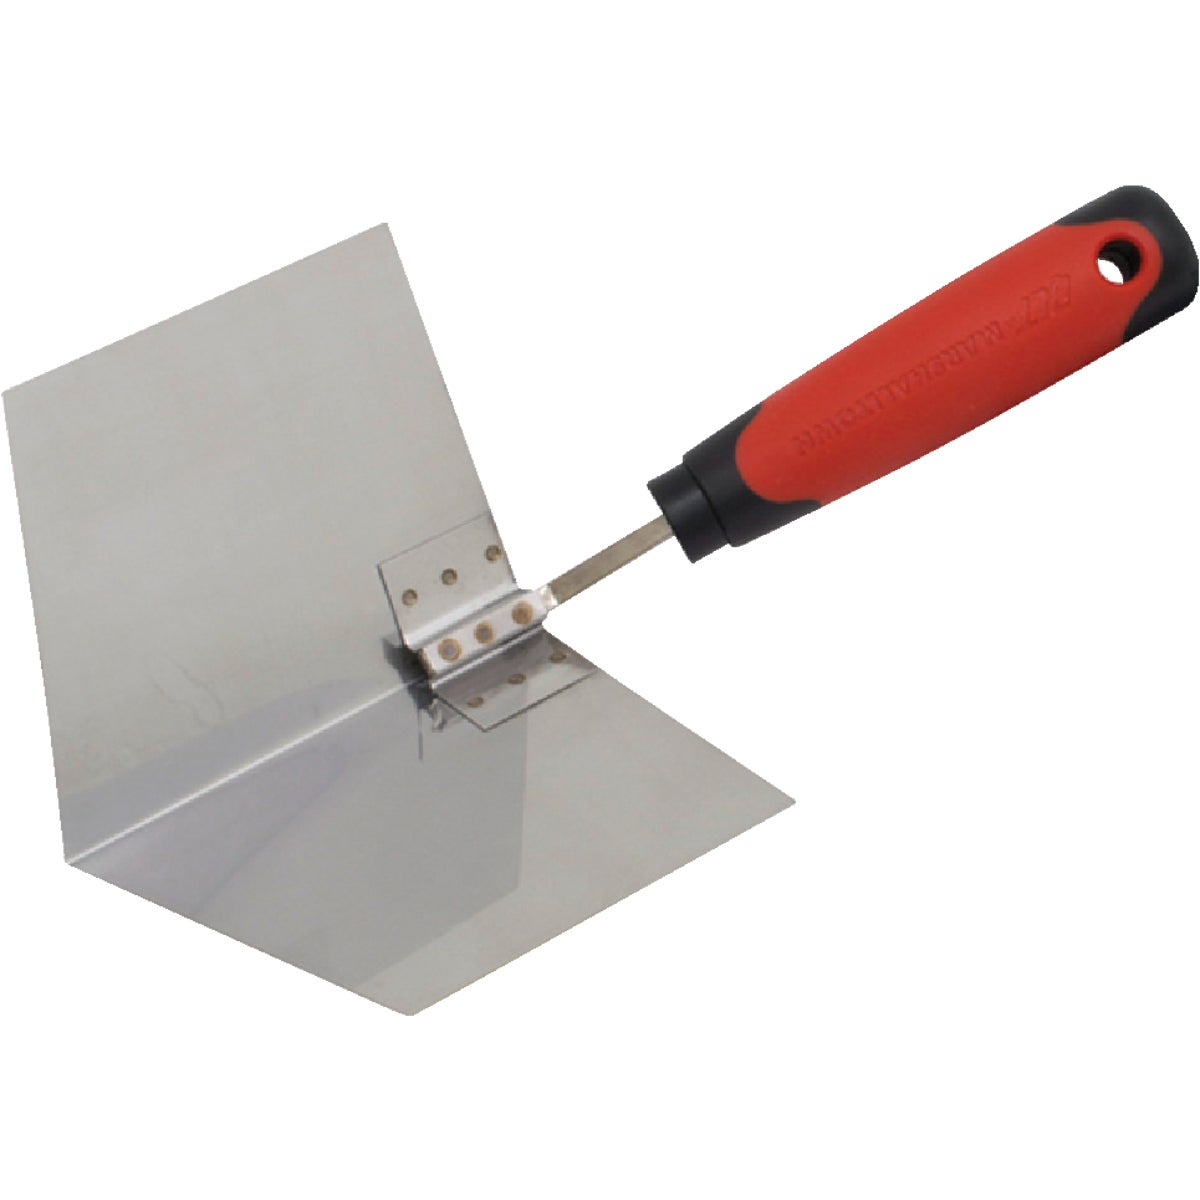 "CT911 4"" IS CRNR TROWEL"